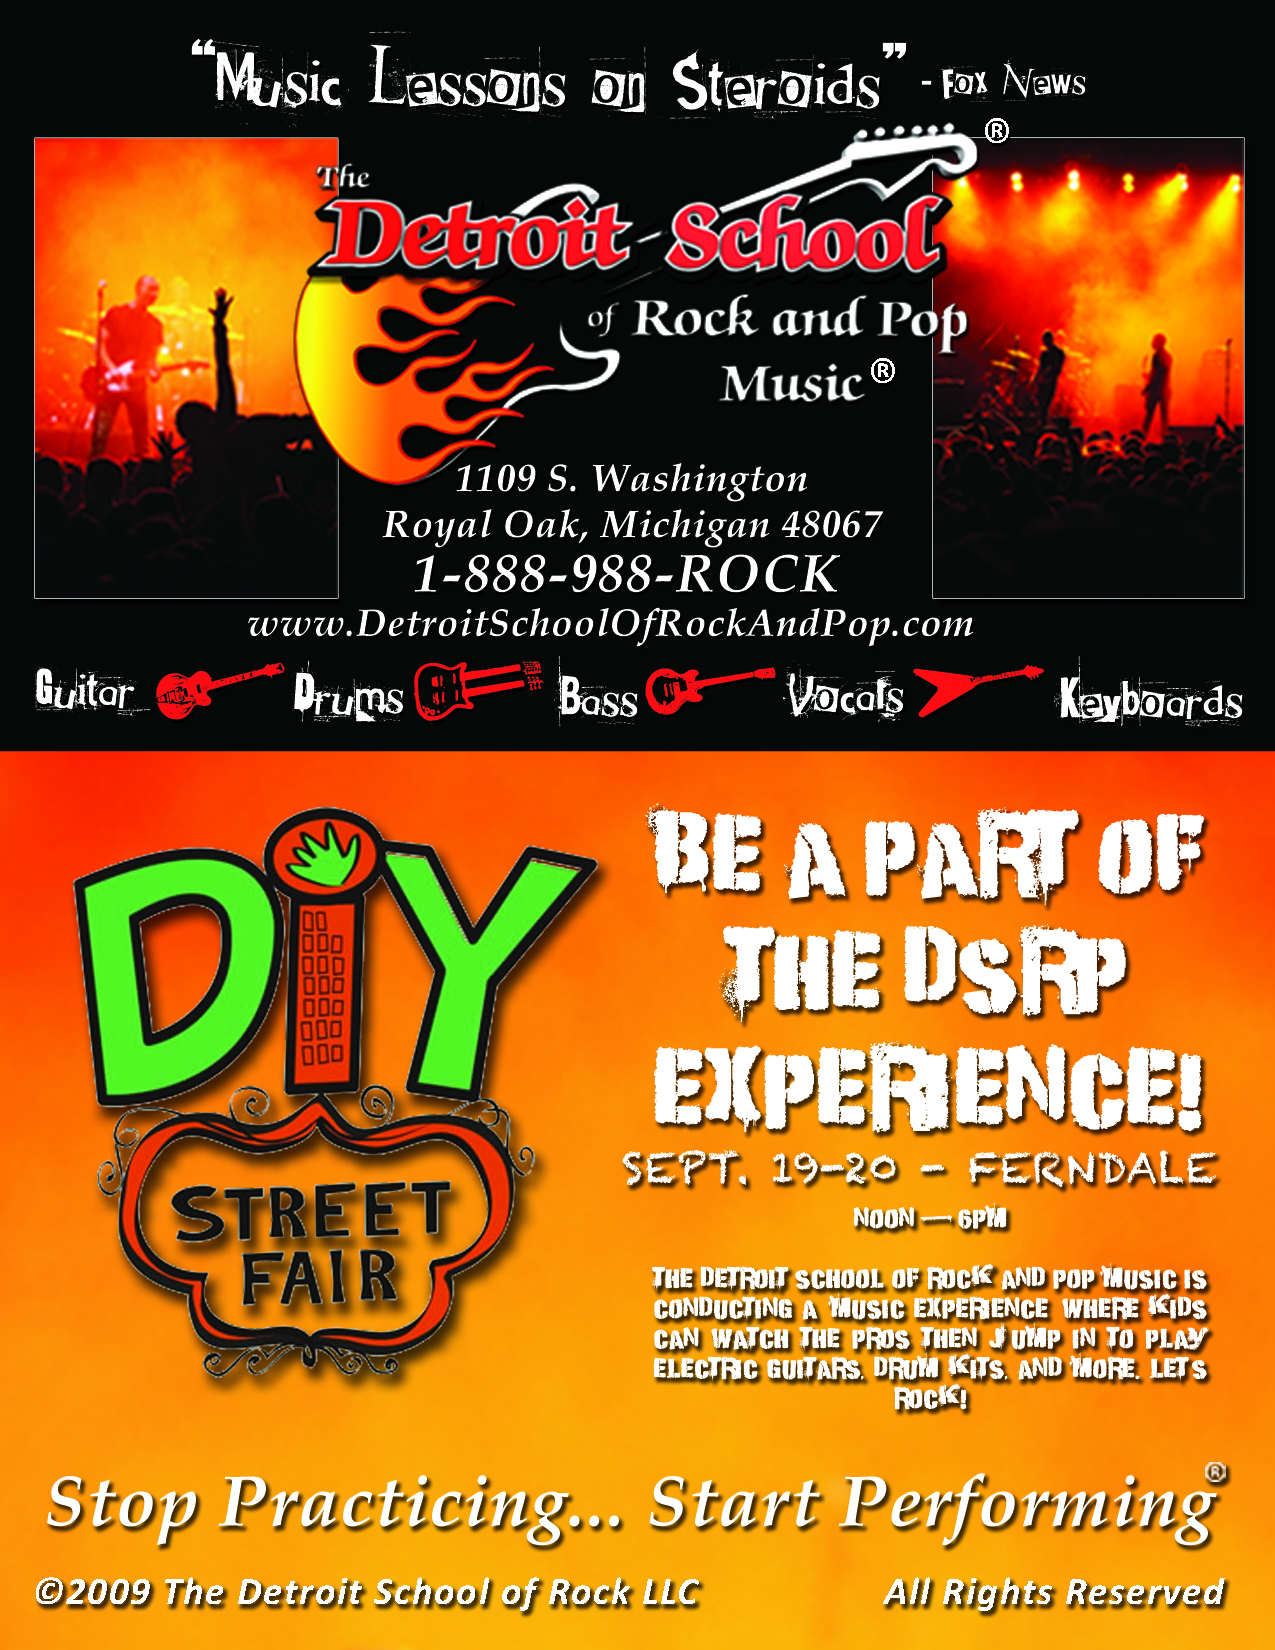 FERNDALE DIY STREET FAIR – September 19th and 20th